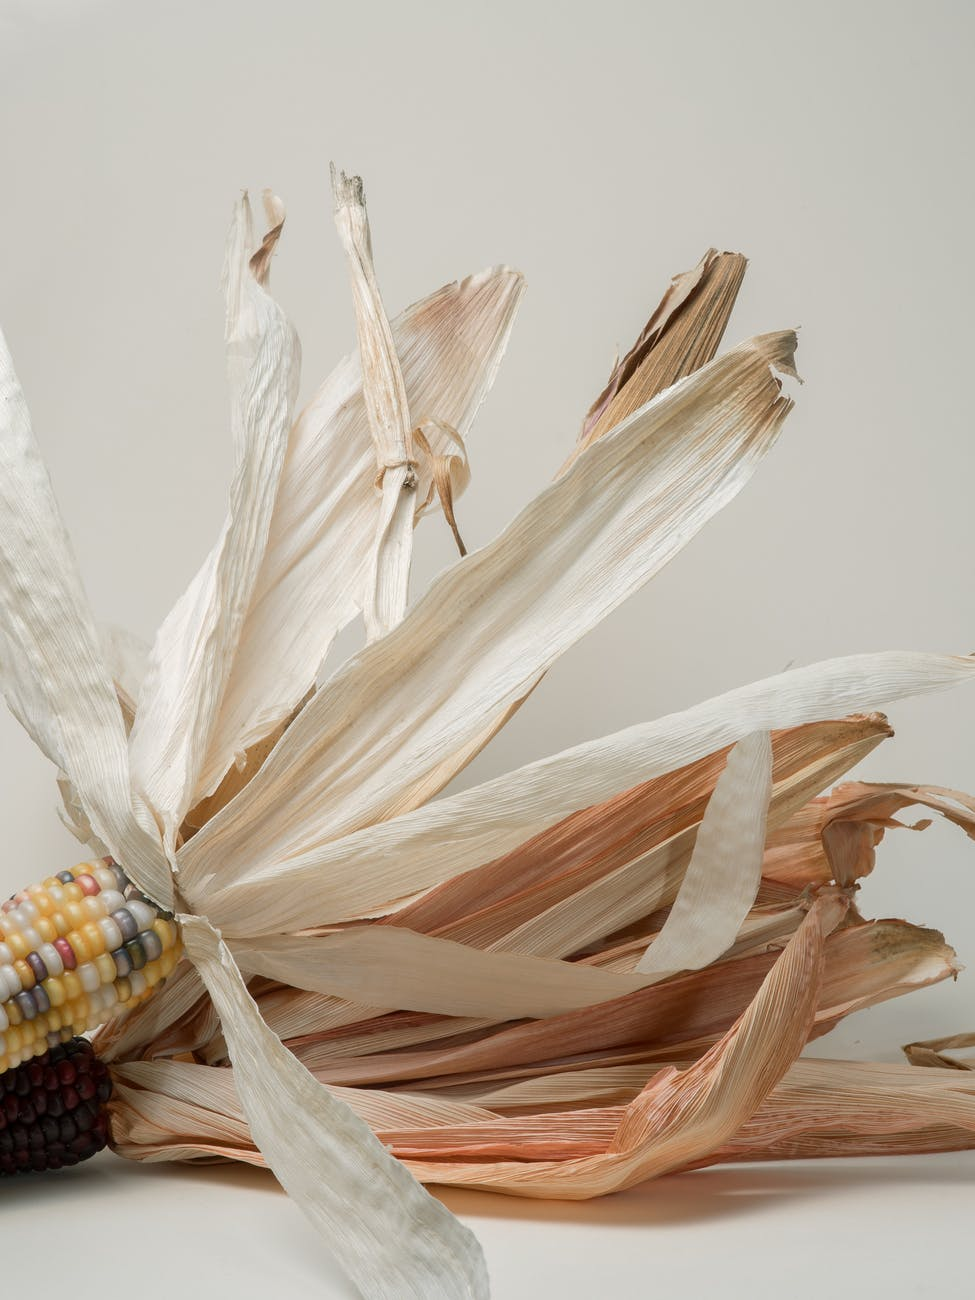 decorative painted mountain corns on white surface